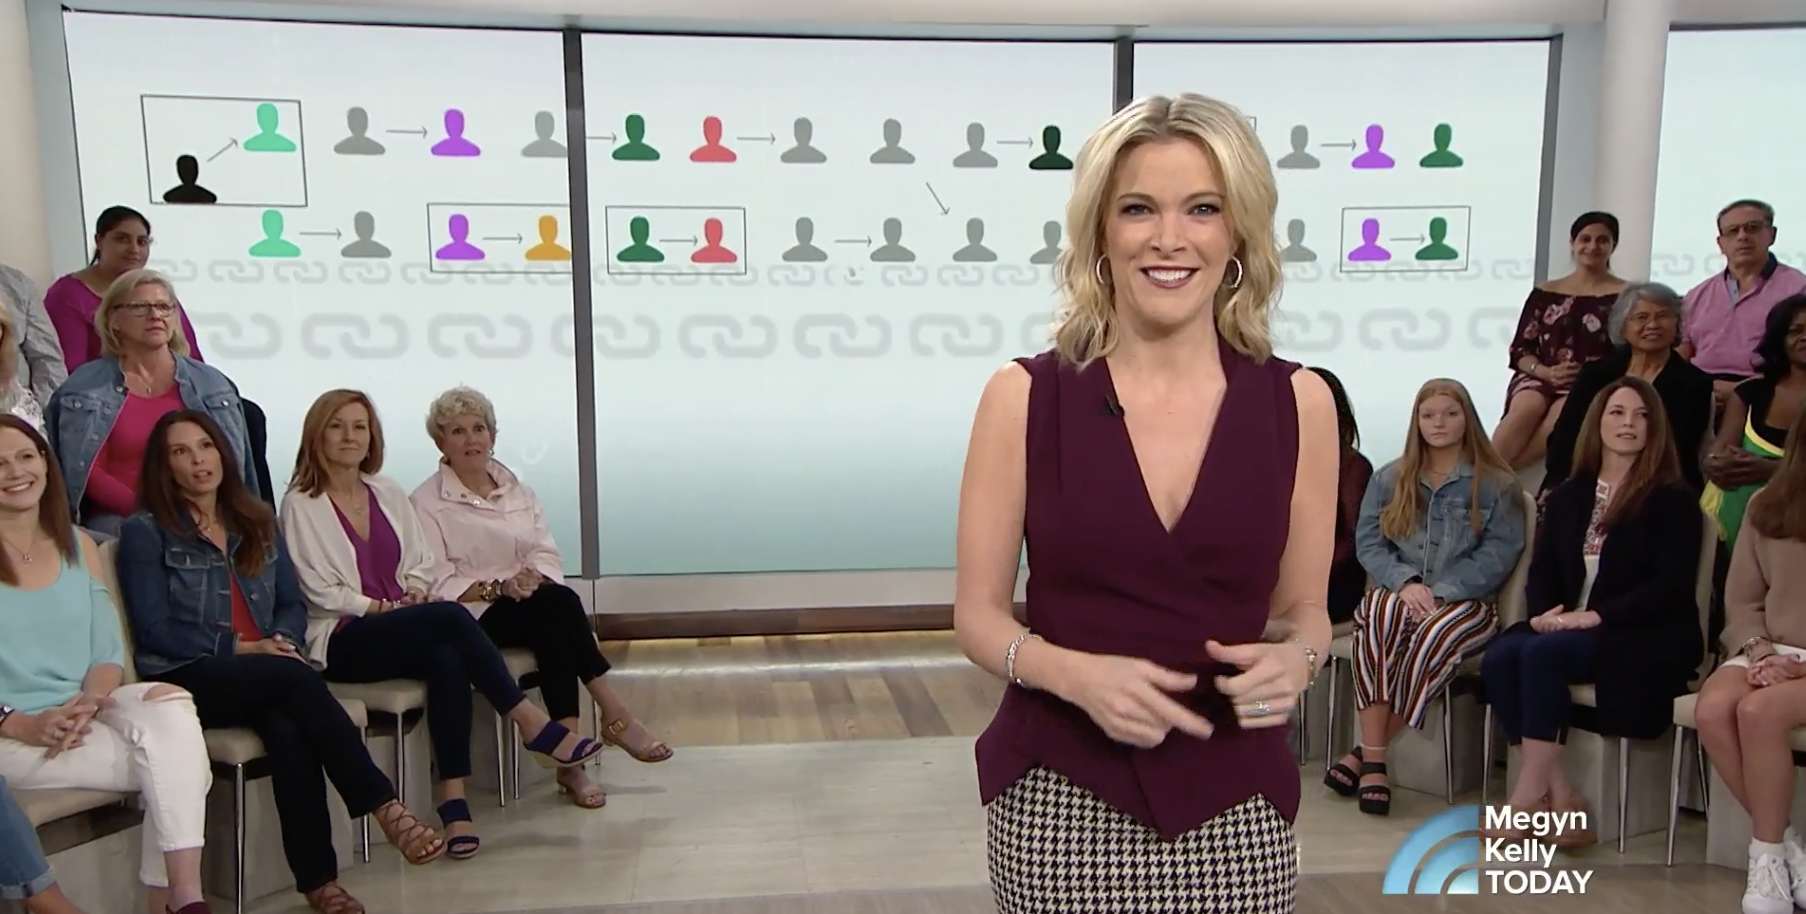 46 Person Kidney Chain! - This story is exploding across the web. Megyn Kelly interviews participants in a 46 person chain of donations this morning on the Today show. Grab some popcorn and some tissues and settle into your easy chair for quite a story HERE. https://www.today.com/…/meet-members-of-a-kidney-transplant…